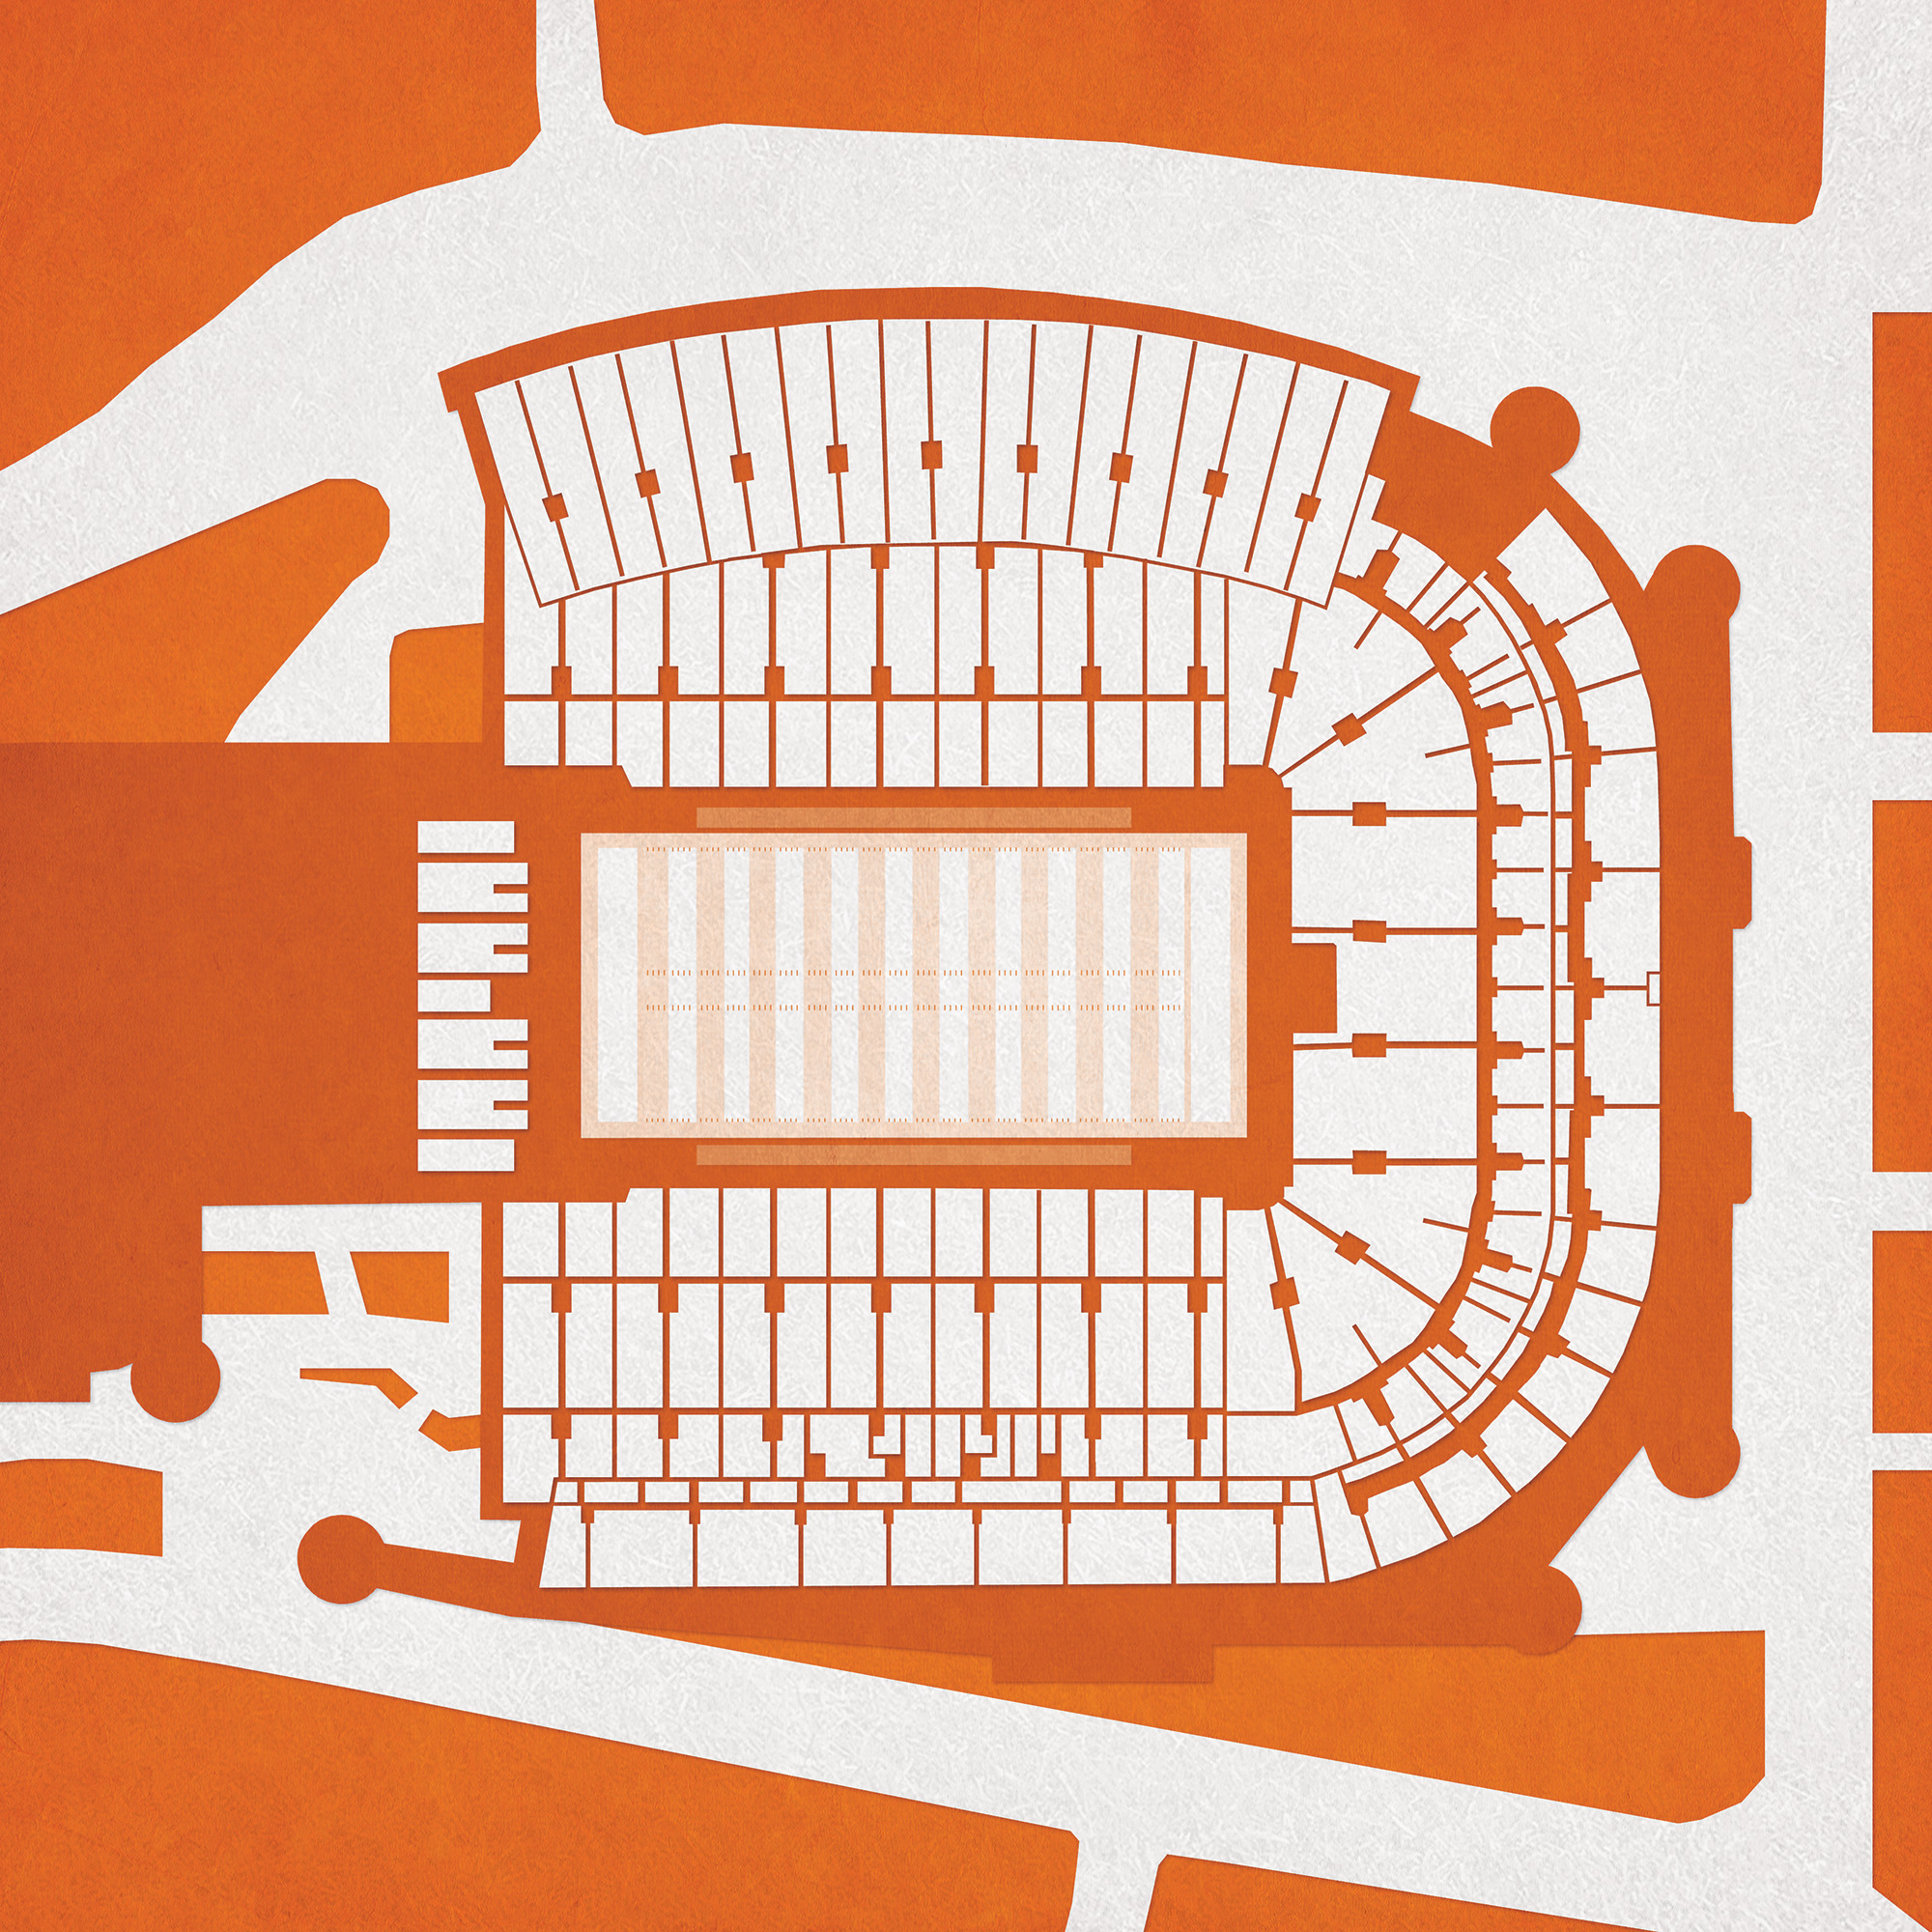 Darrell K Royal - Texas Memorial Stadium Map Art - The Map Shop - Texas Memorial Stadium Map